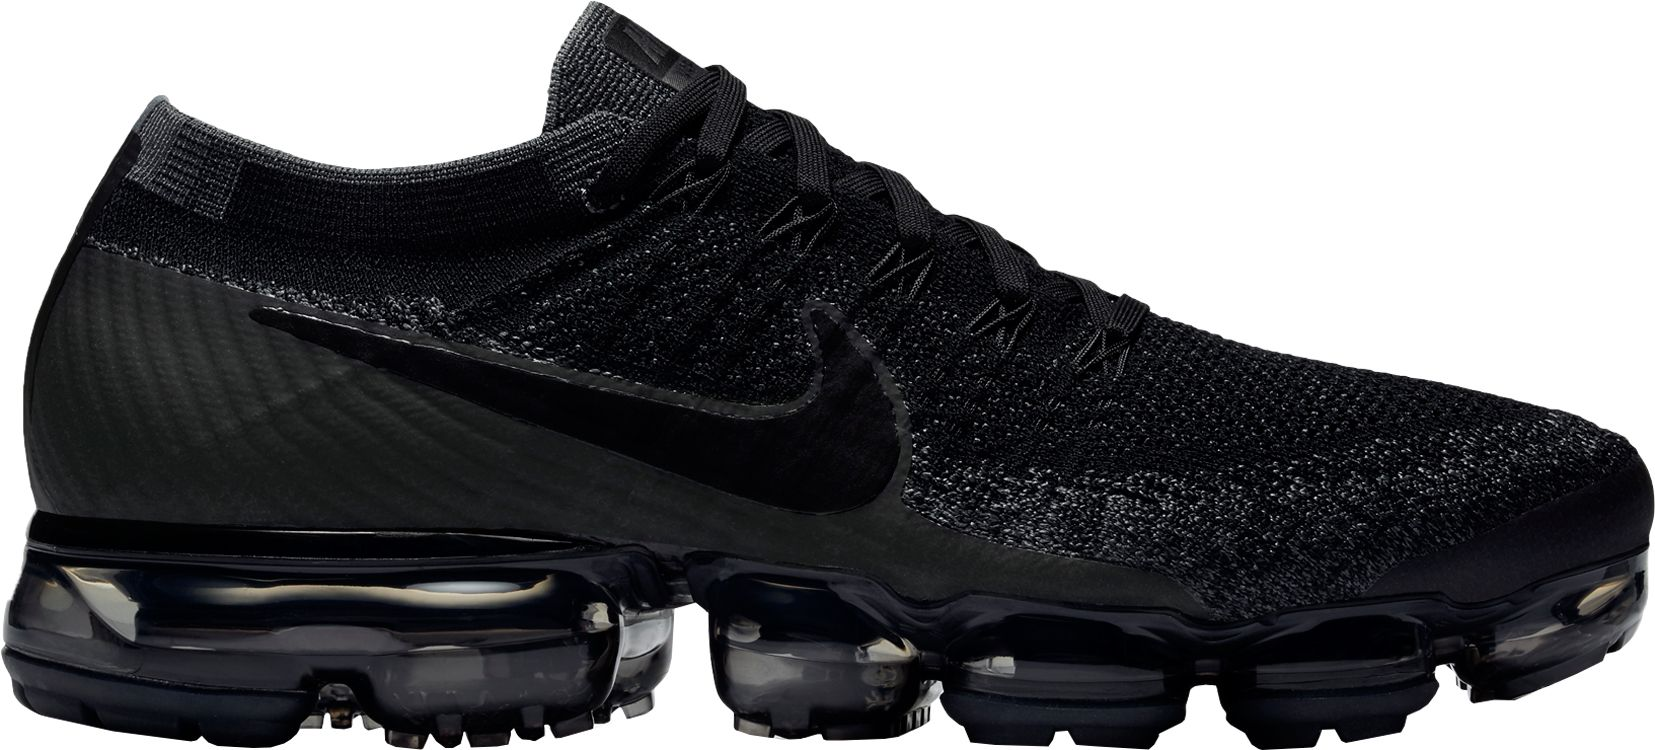 Black Comme des Garcons Air VaporMax Flyknit Sneakers Barneys